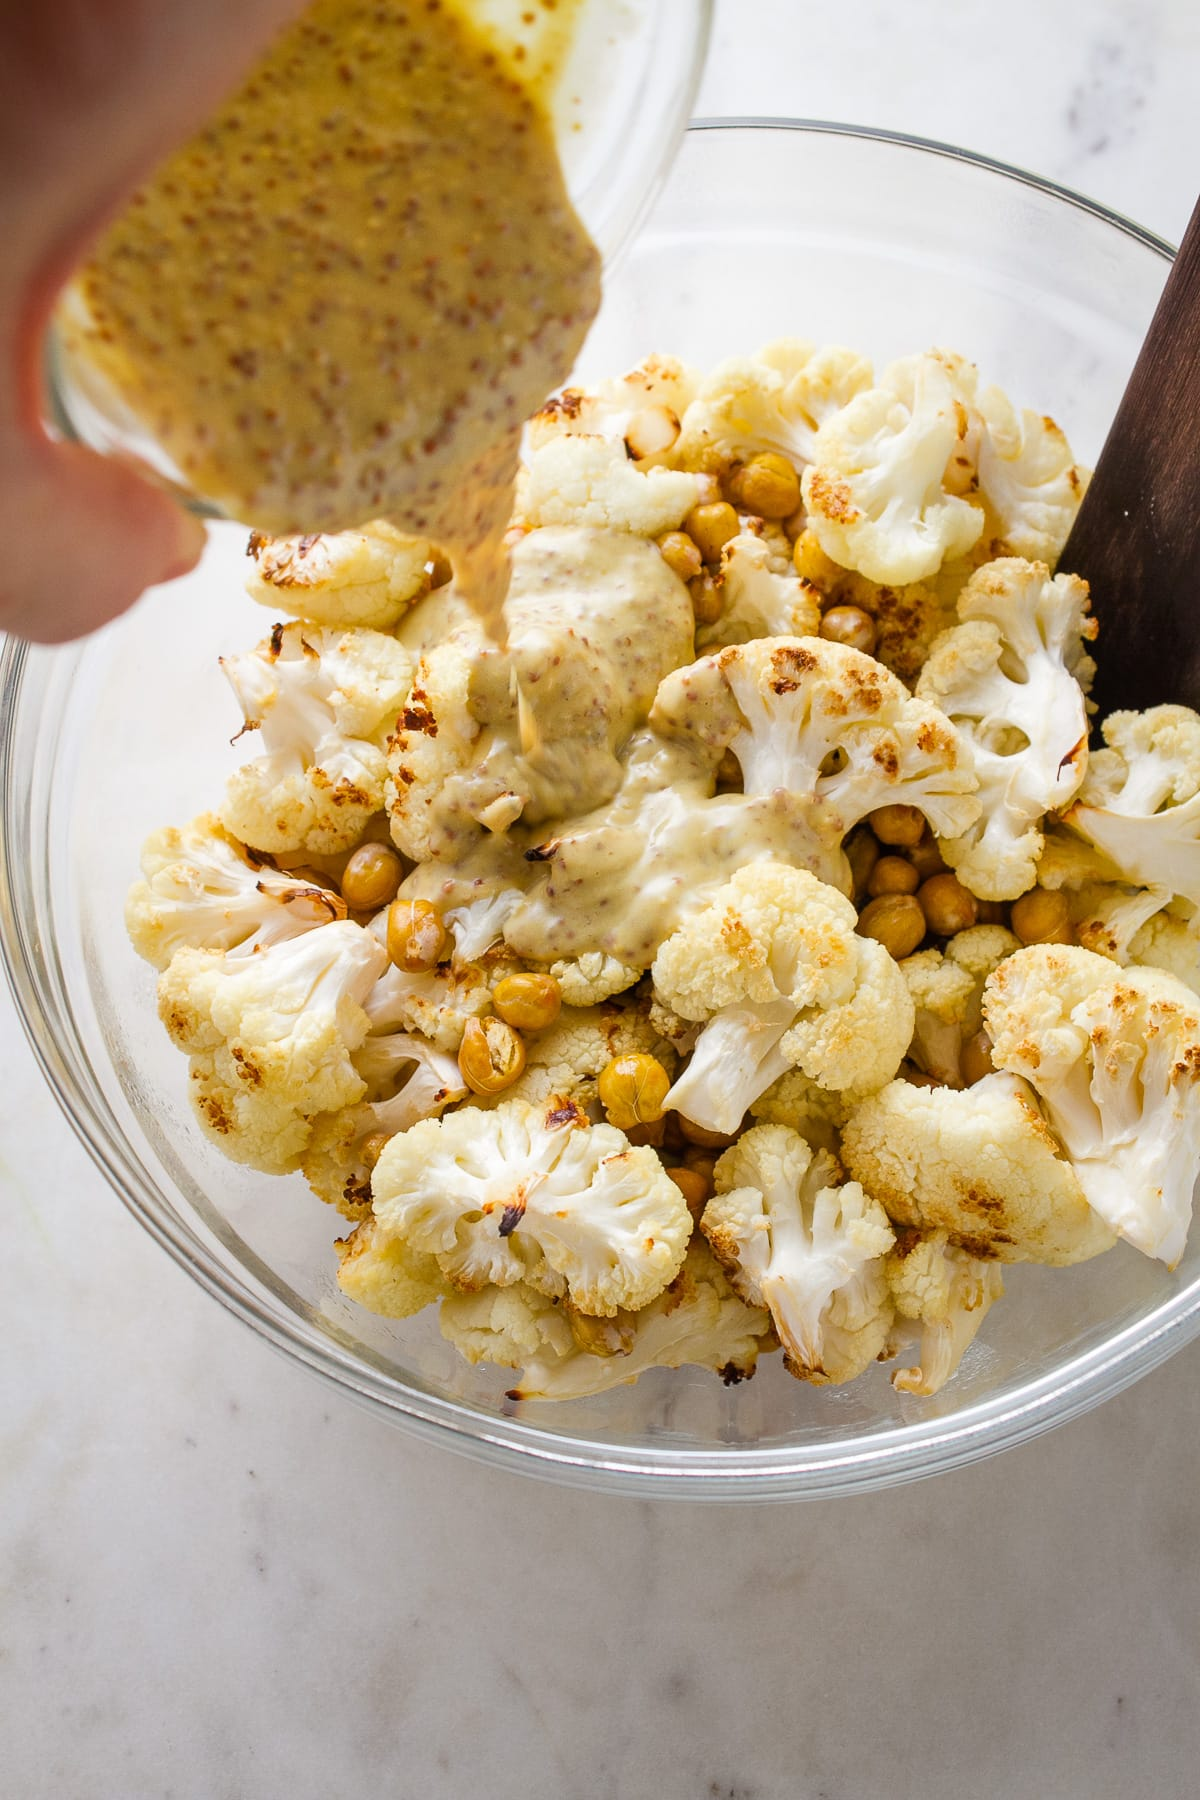 top down view of roasted cauliflower and chickpeas in a glass mixing bowl with mustard dressing poured overtop.